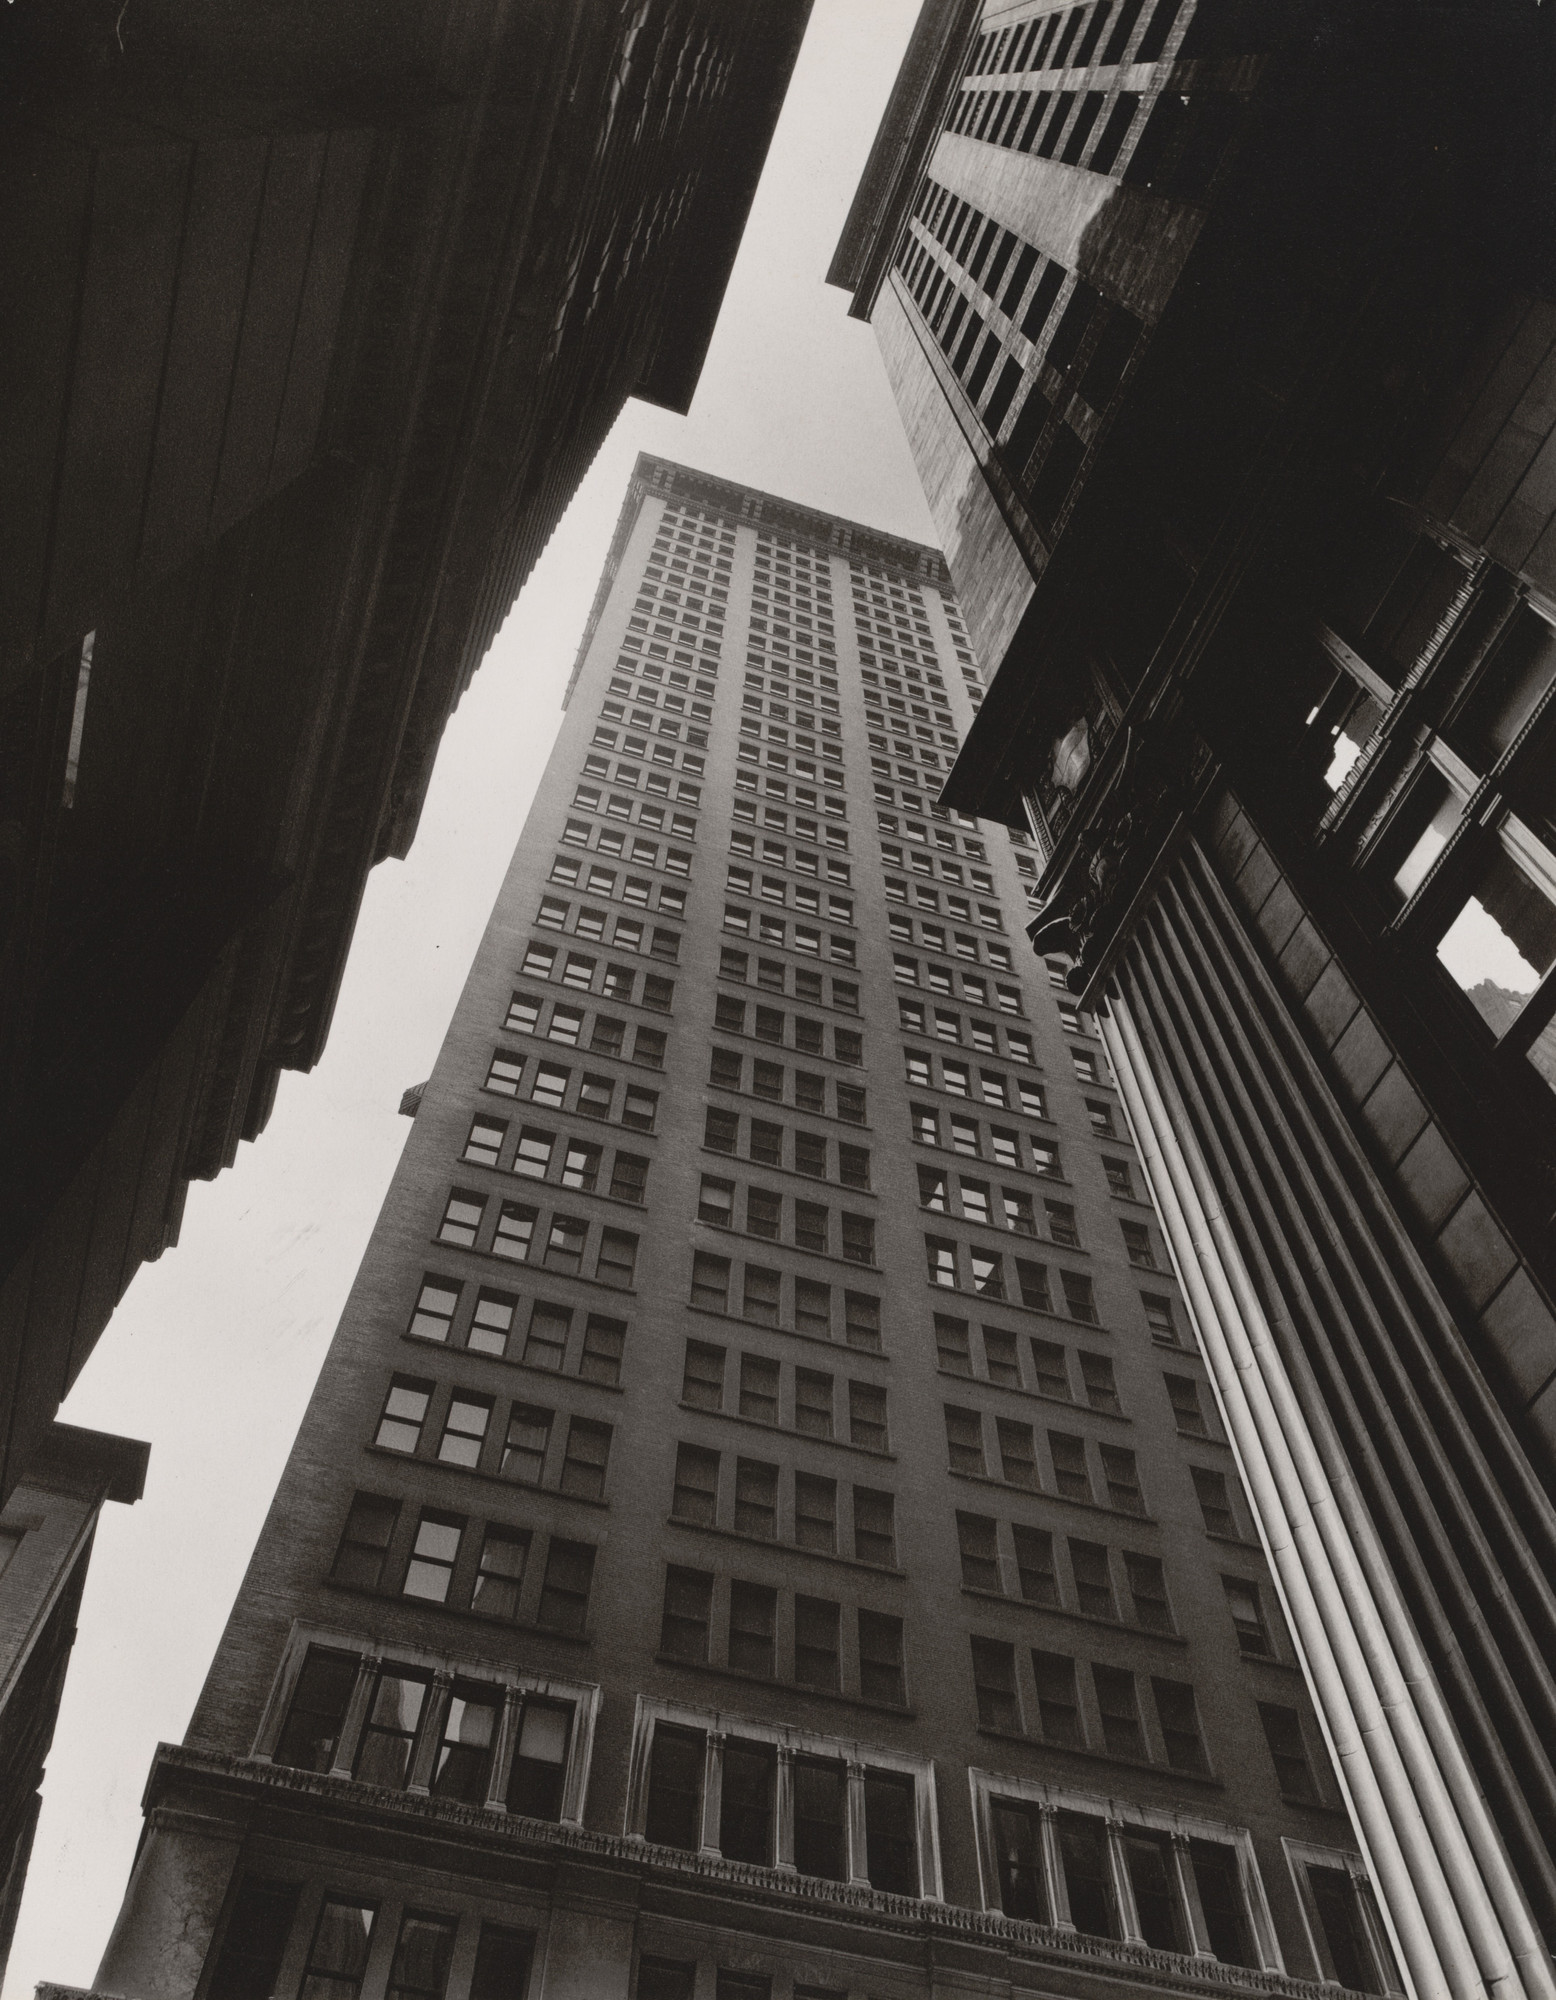 Berenice Abbott. Canyon: Broadway and Exchange Place, Manhattan. July 16, 1936